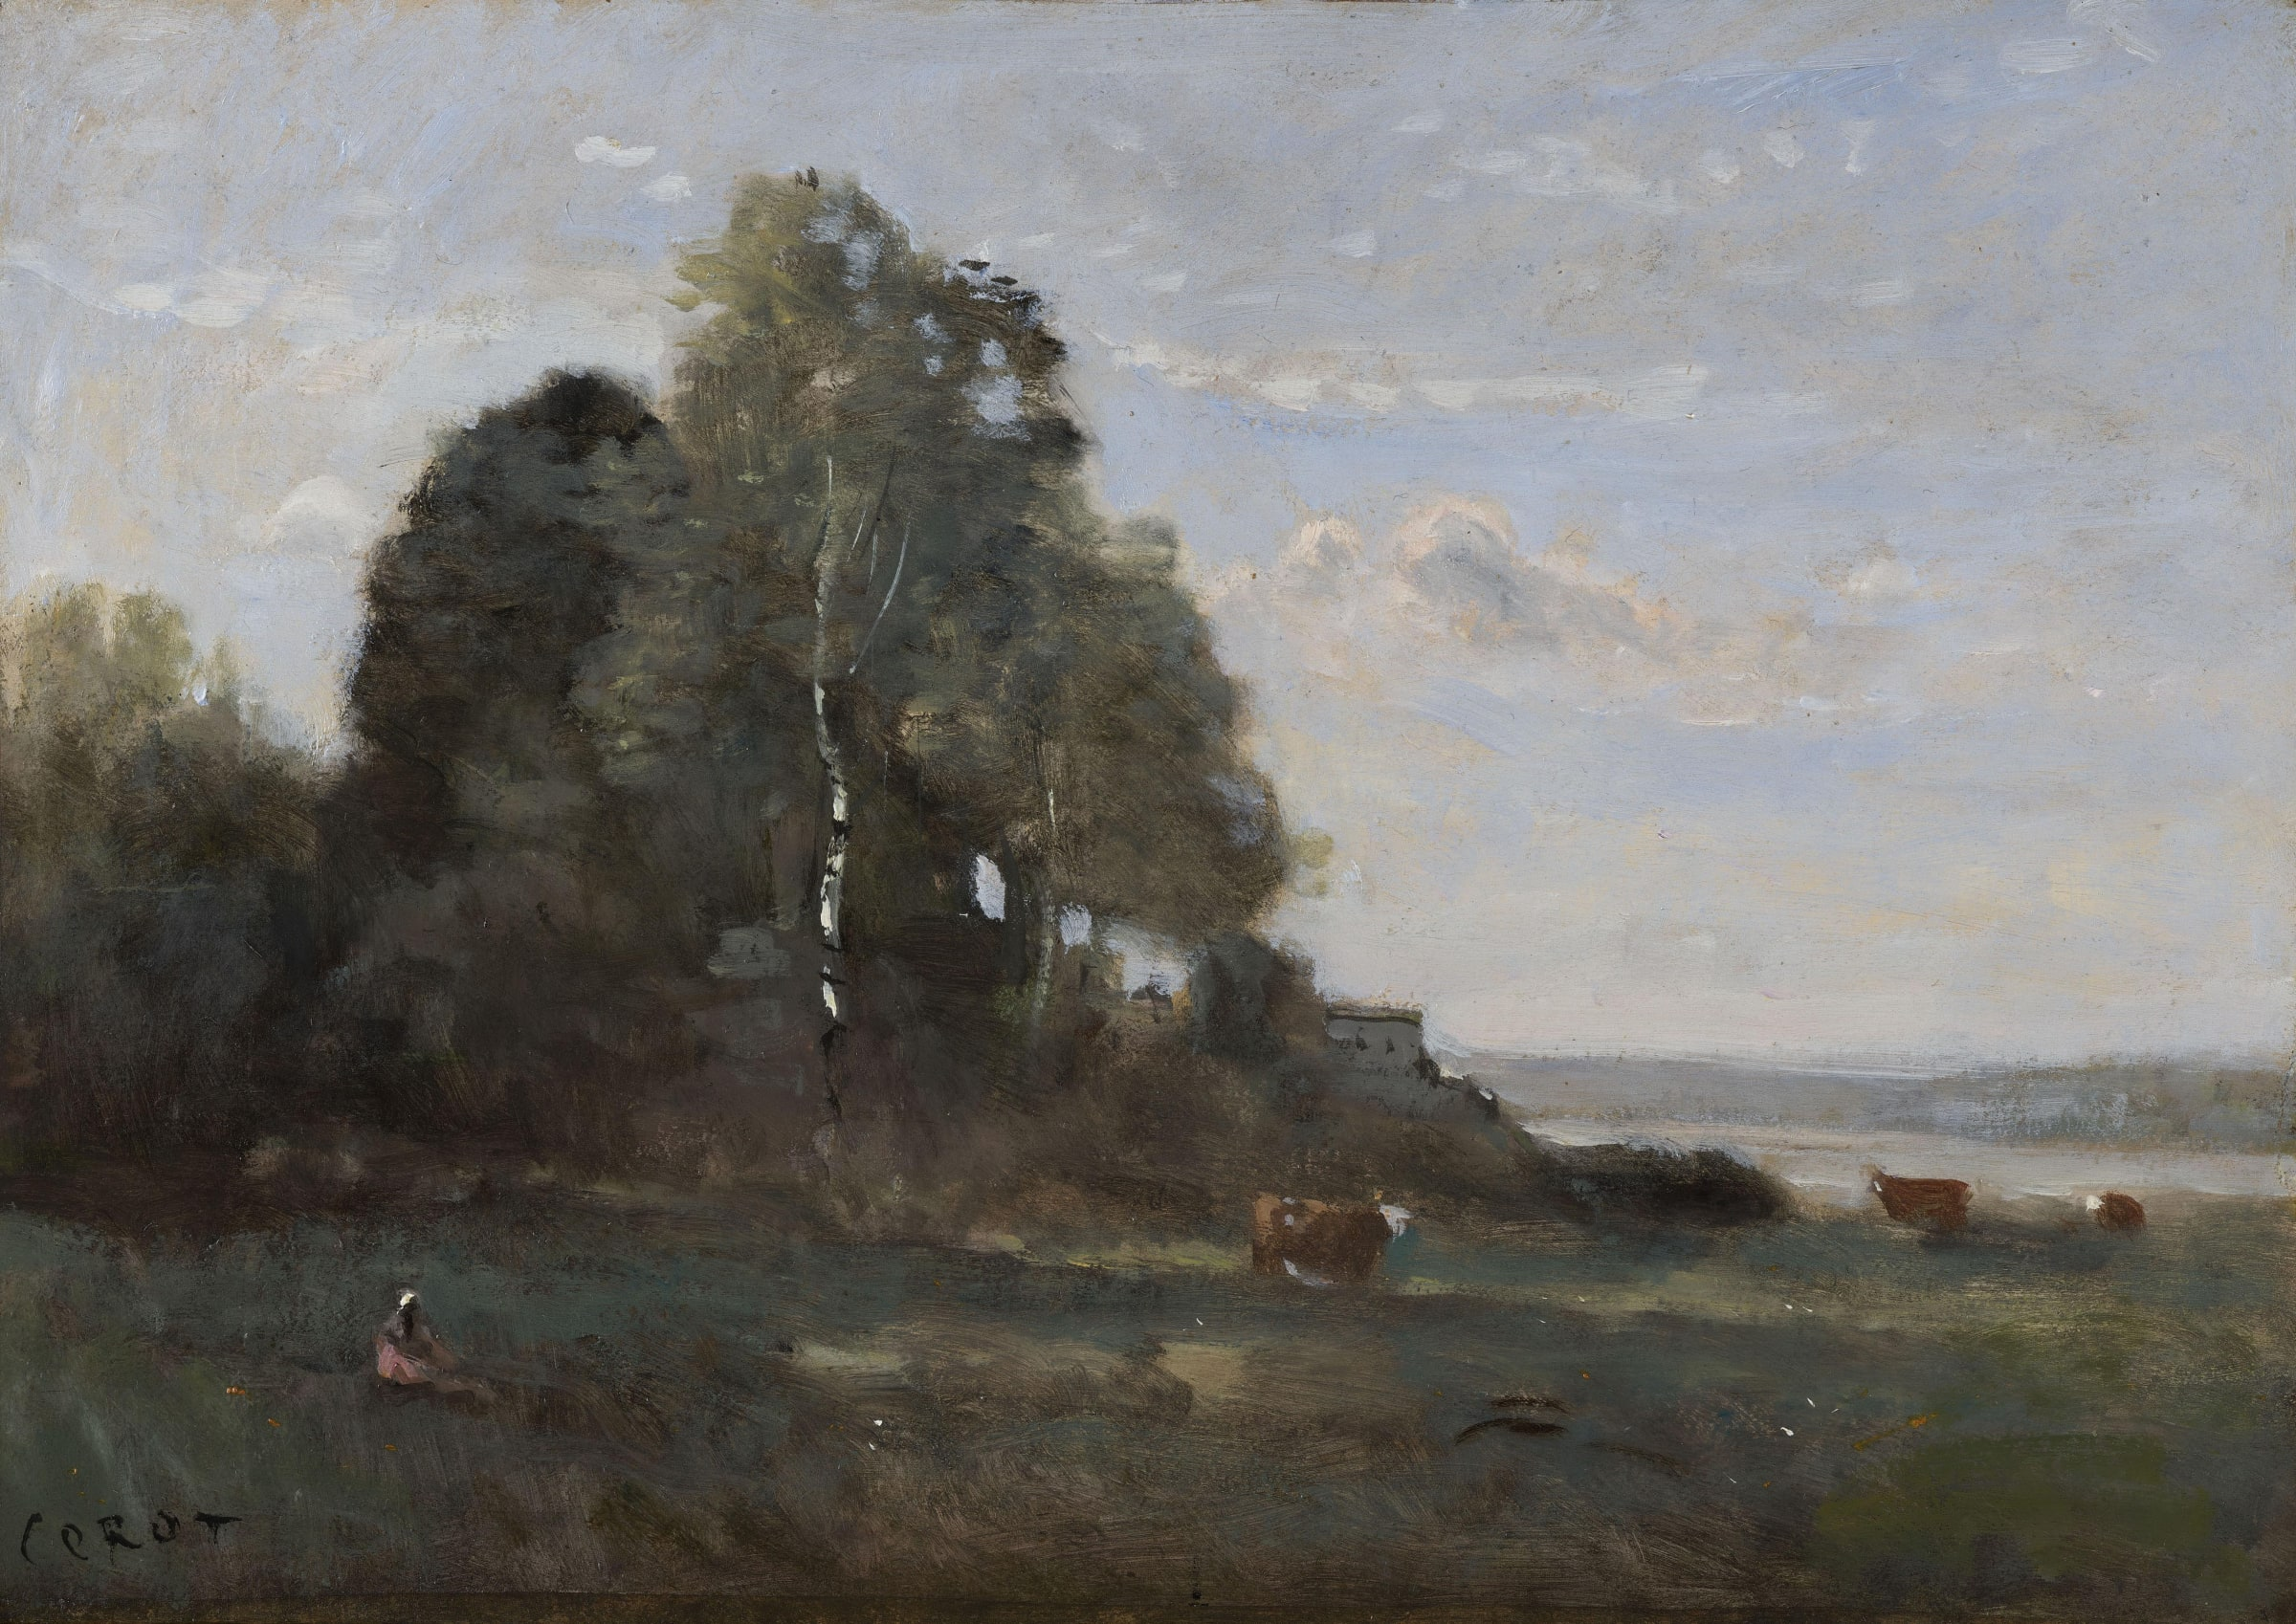 <span class=&#34;link fancybox-details-link&#34;><a href=&#34;/artists/30-jean-baptiste-camille-corot/works/9429-jean-baptiste-camille-corot-vach-re-au-bord-de-l-tang-c.a-1850/&#34;>View Detail Page</a></span><div class=&#34;artist&#34;><span class=&#34;artist&#34;><strong>Jean Baptiste Camille Corot</strong></span></div>